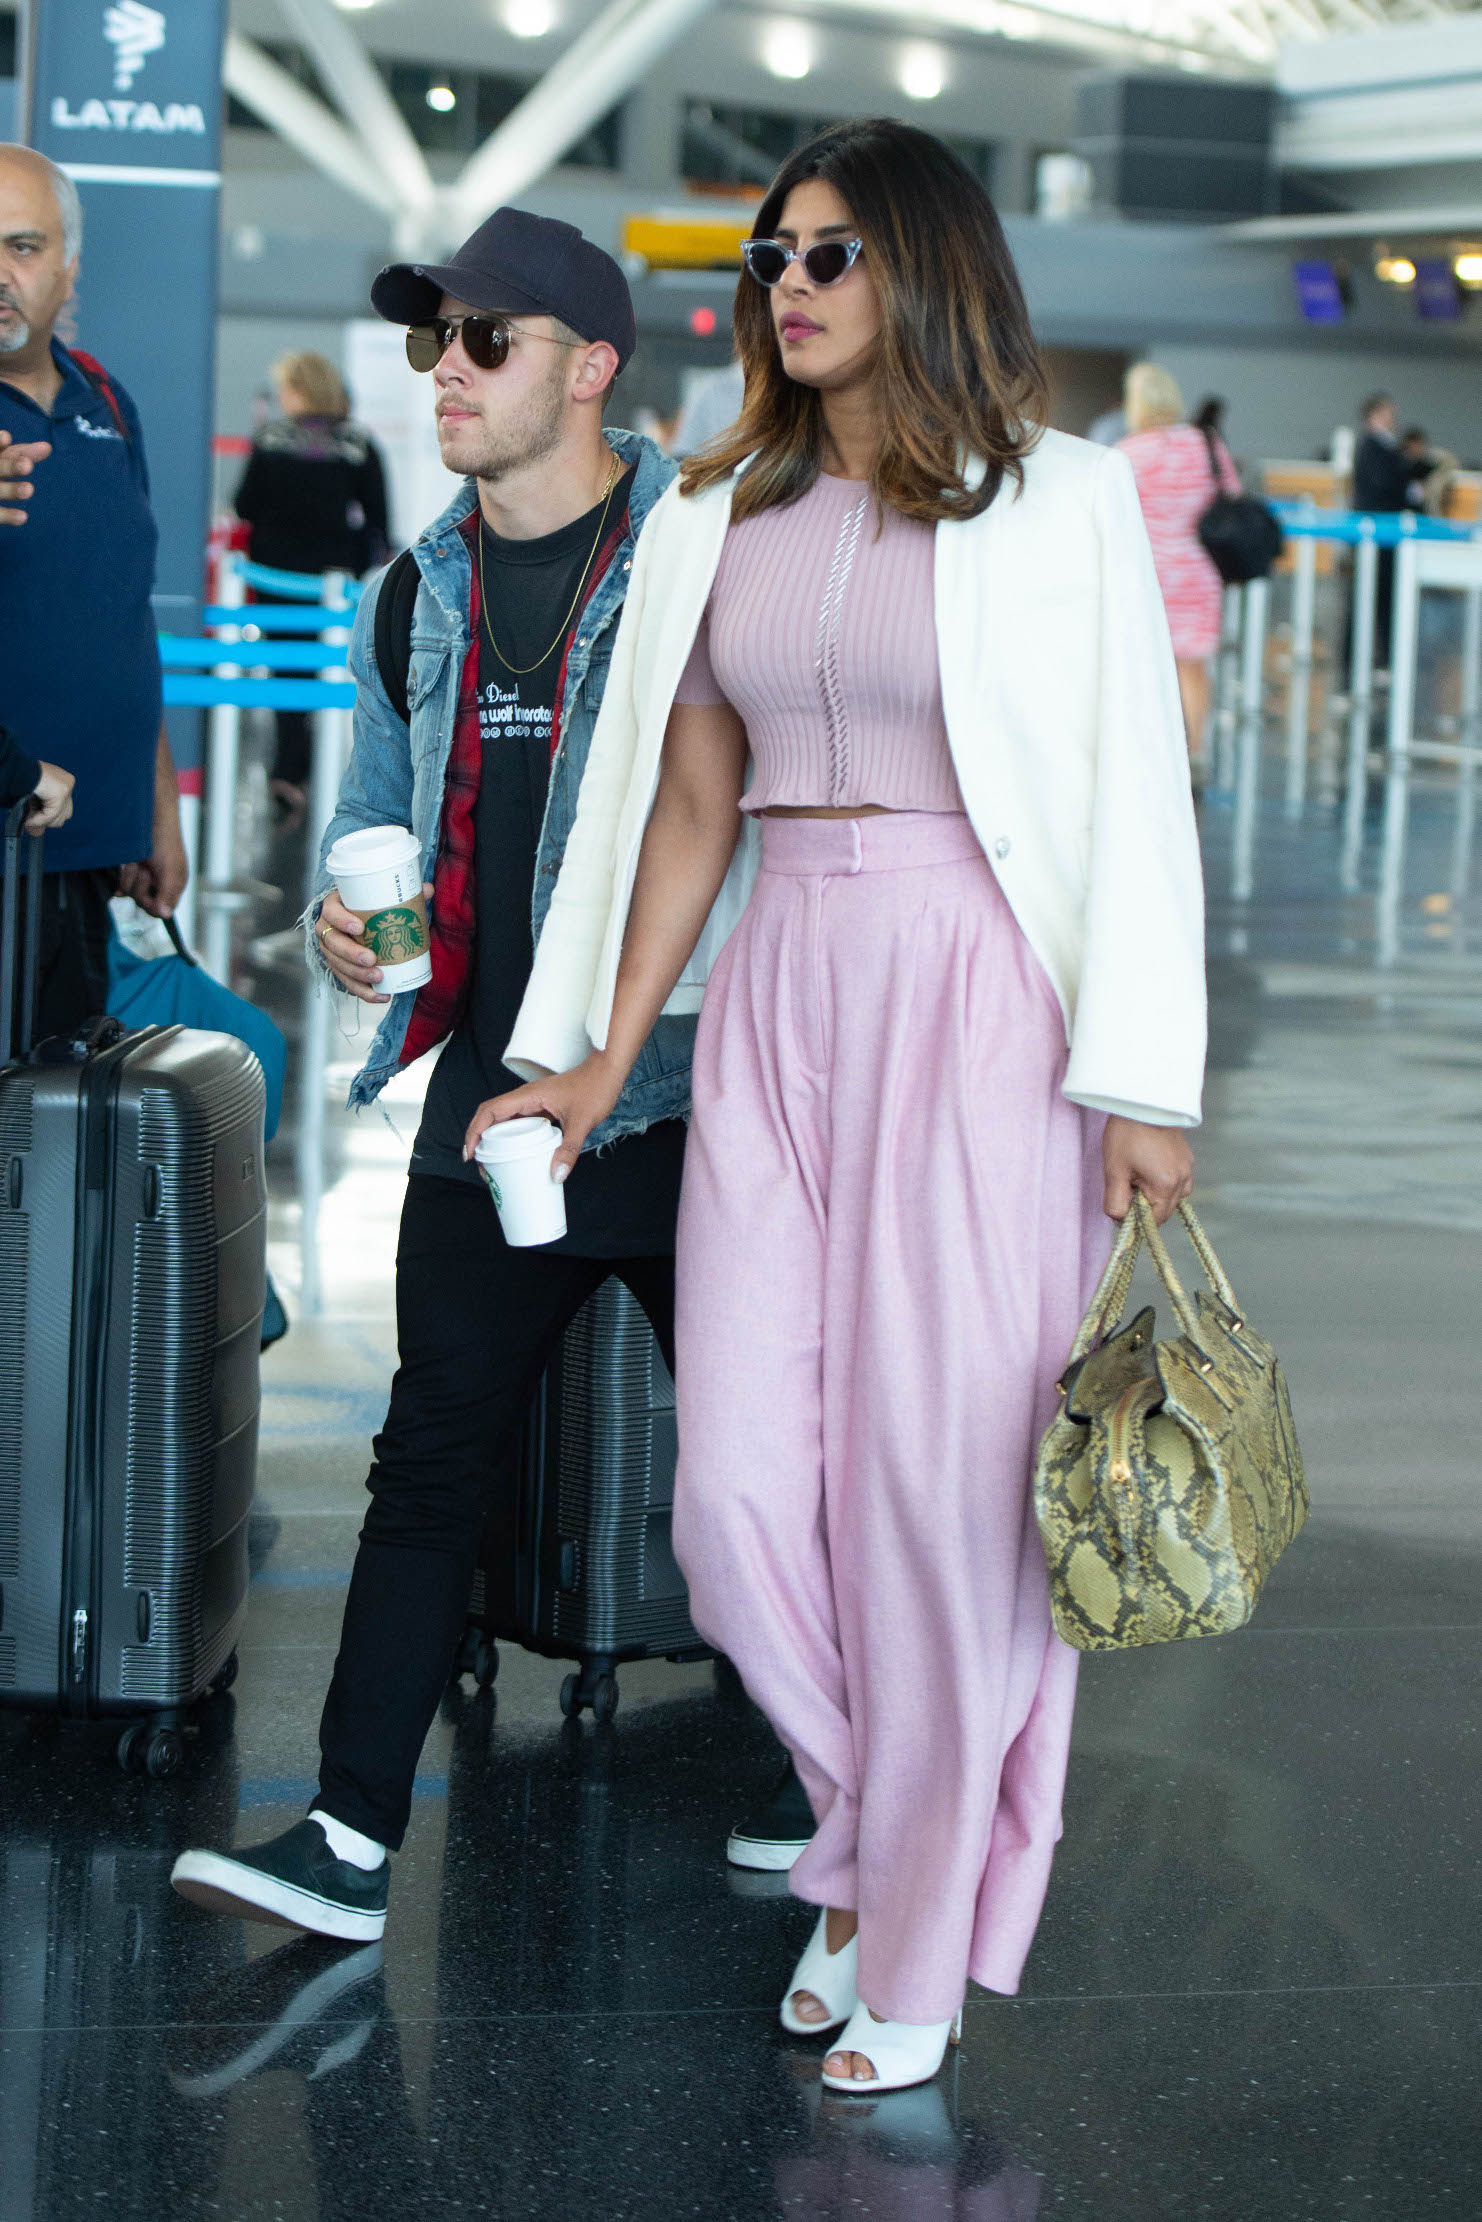 Nick Jonas and Priyanka Chopra arrive at JFK airport in NYC.  Pictured: Nick Jonas and Priyanka Chopra Ref: SPL5002447 080618 NON-EXCLUSIVE Picture by: SplashNews.com  Splash News and Pictures Los Angeles: 310-821-2666 New York: 212-619-2666 London: 0207 644 7656 Milan: +39 02 4399 8577 photodesk@splashnews.com  World Rights